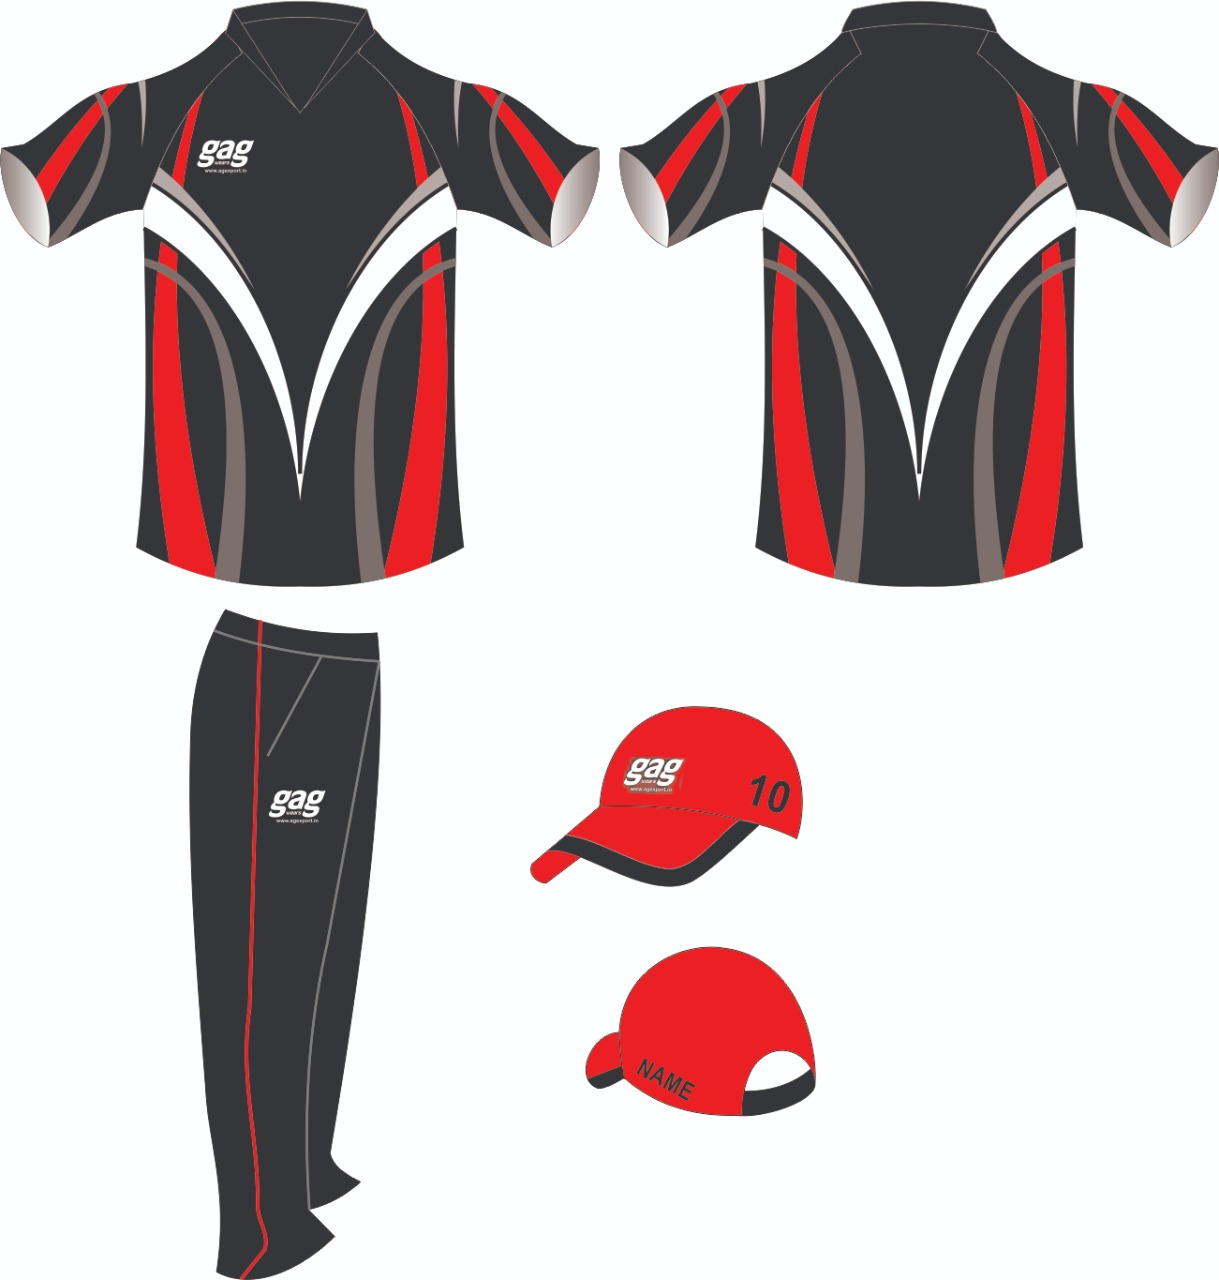 Cricket Clothing Manufacturers in Jalandhar in South Korea